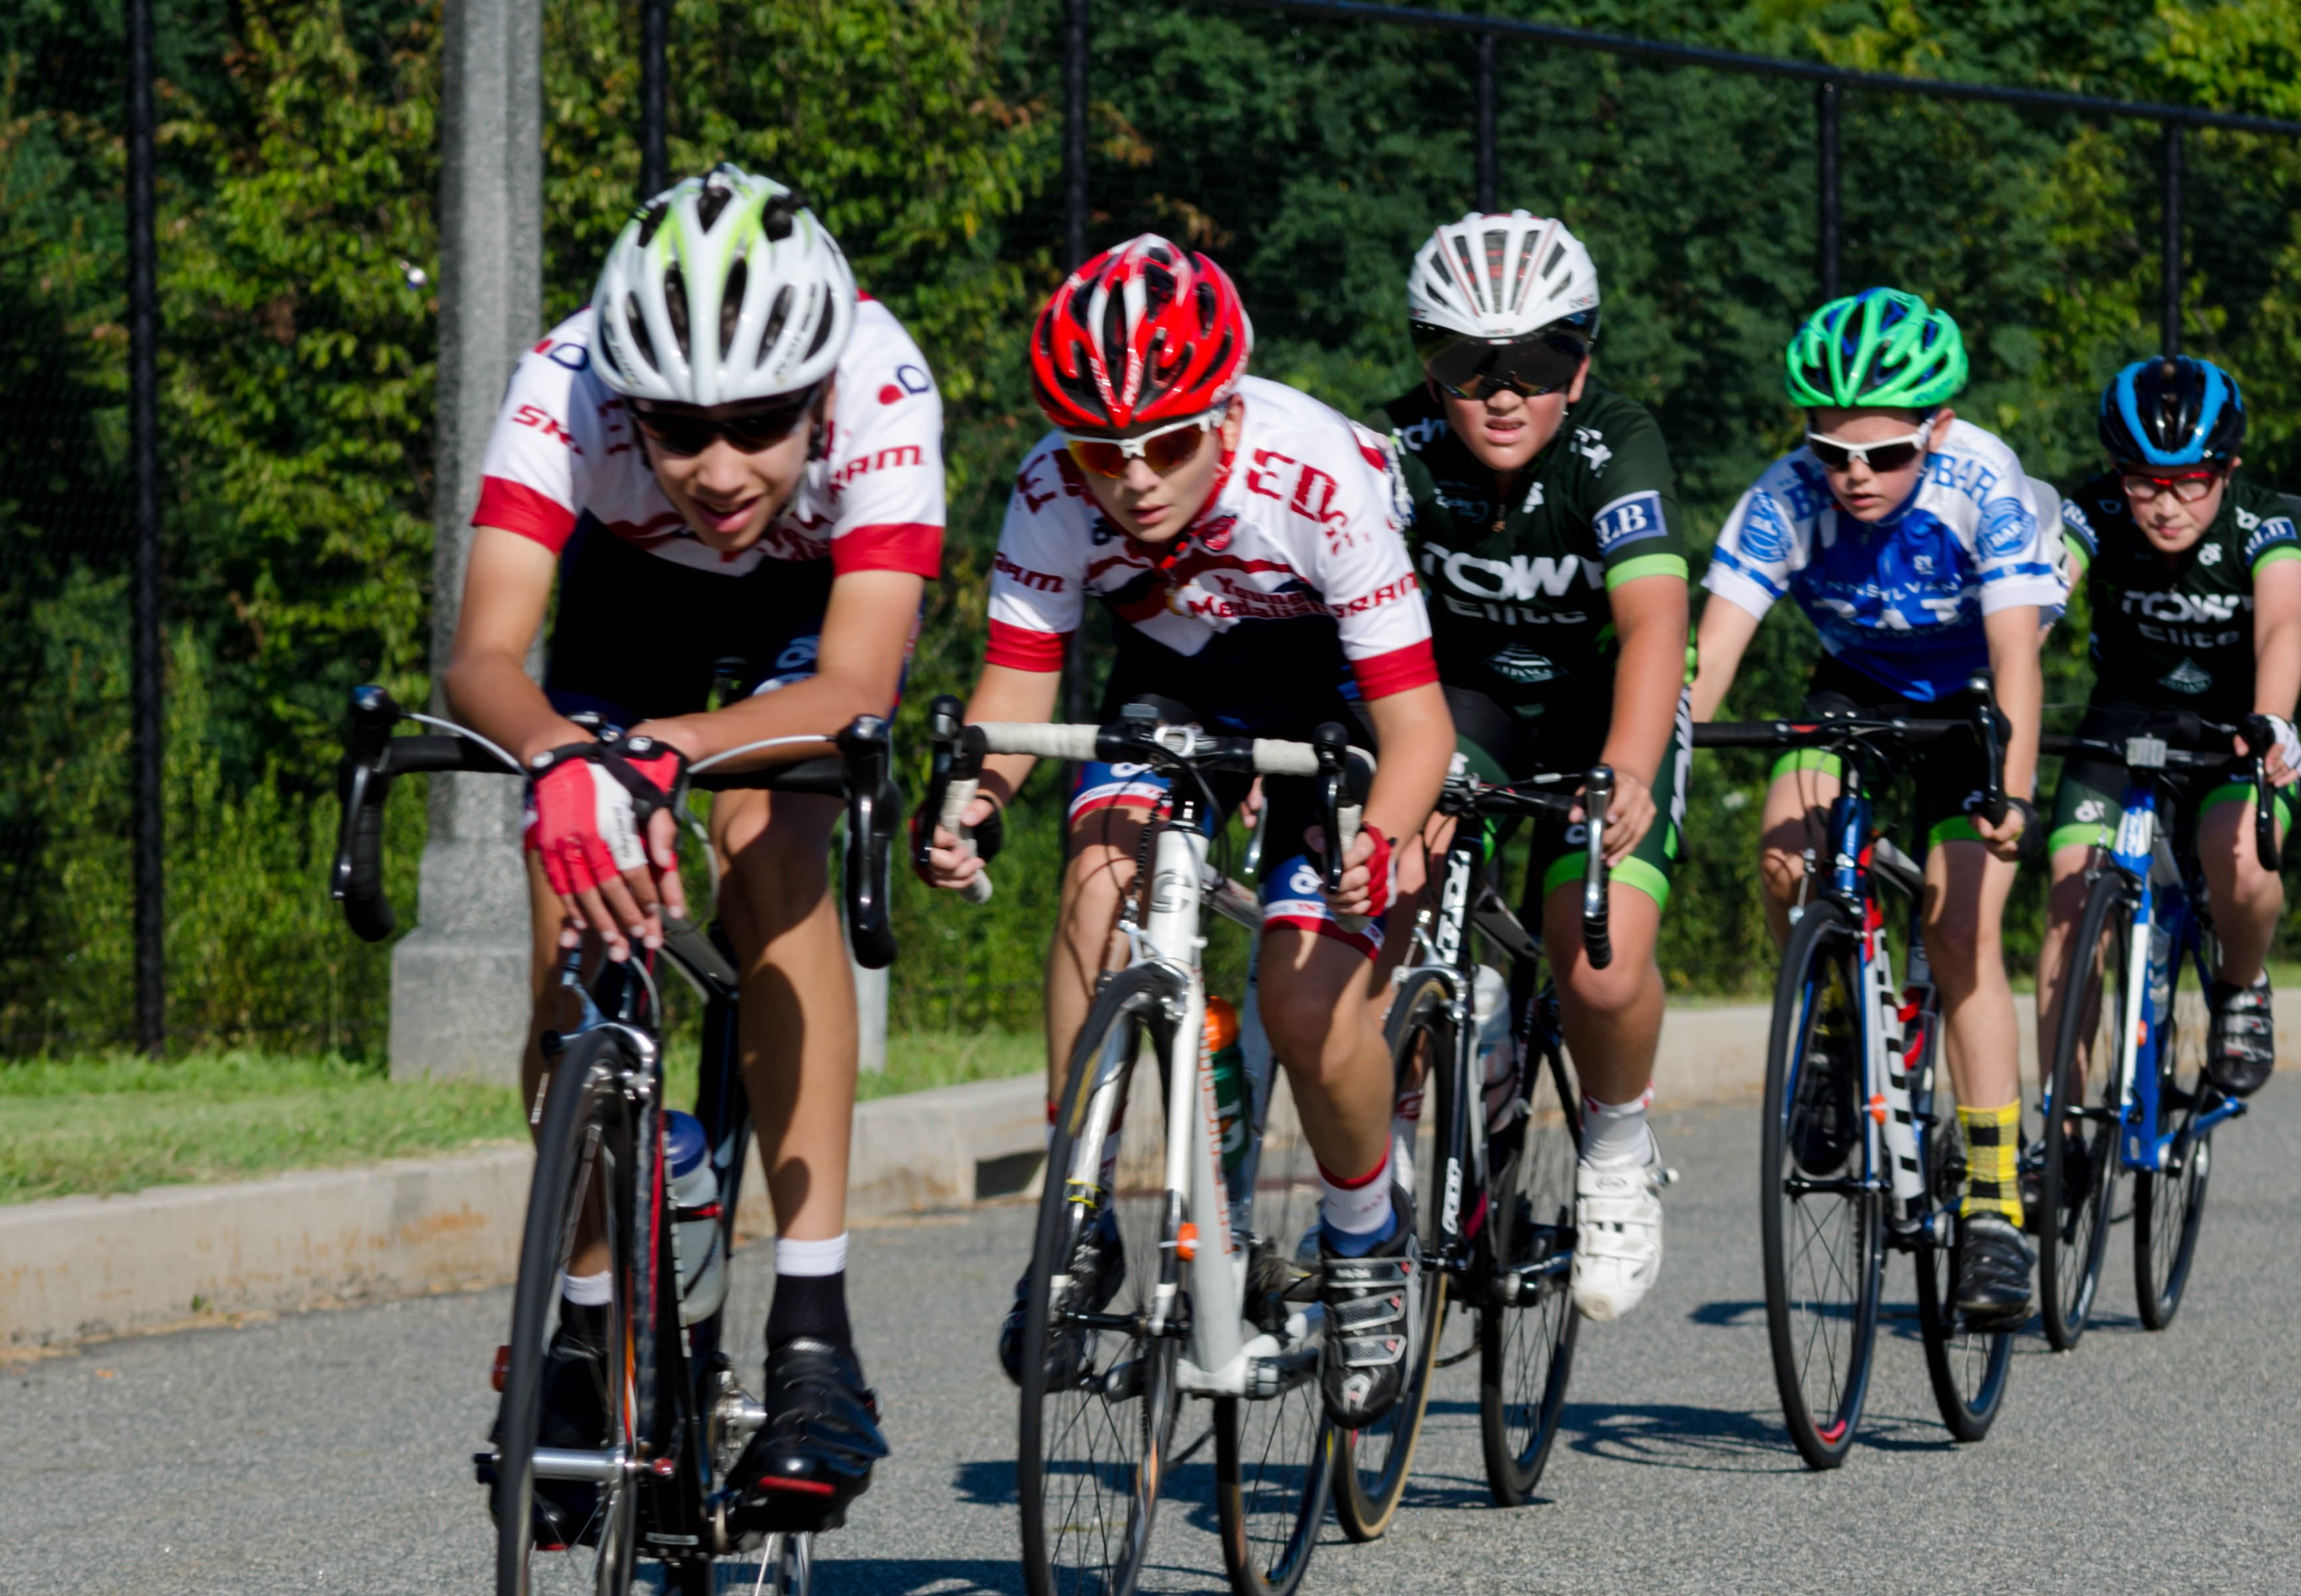 Hundreds of Local Bike Riders Expected to Compete at Rothman Institute Amateur Trials